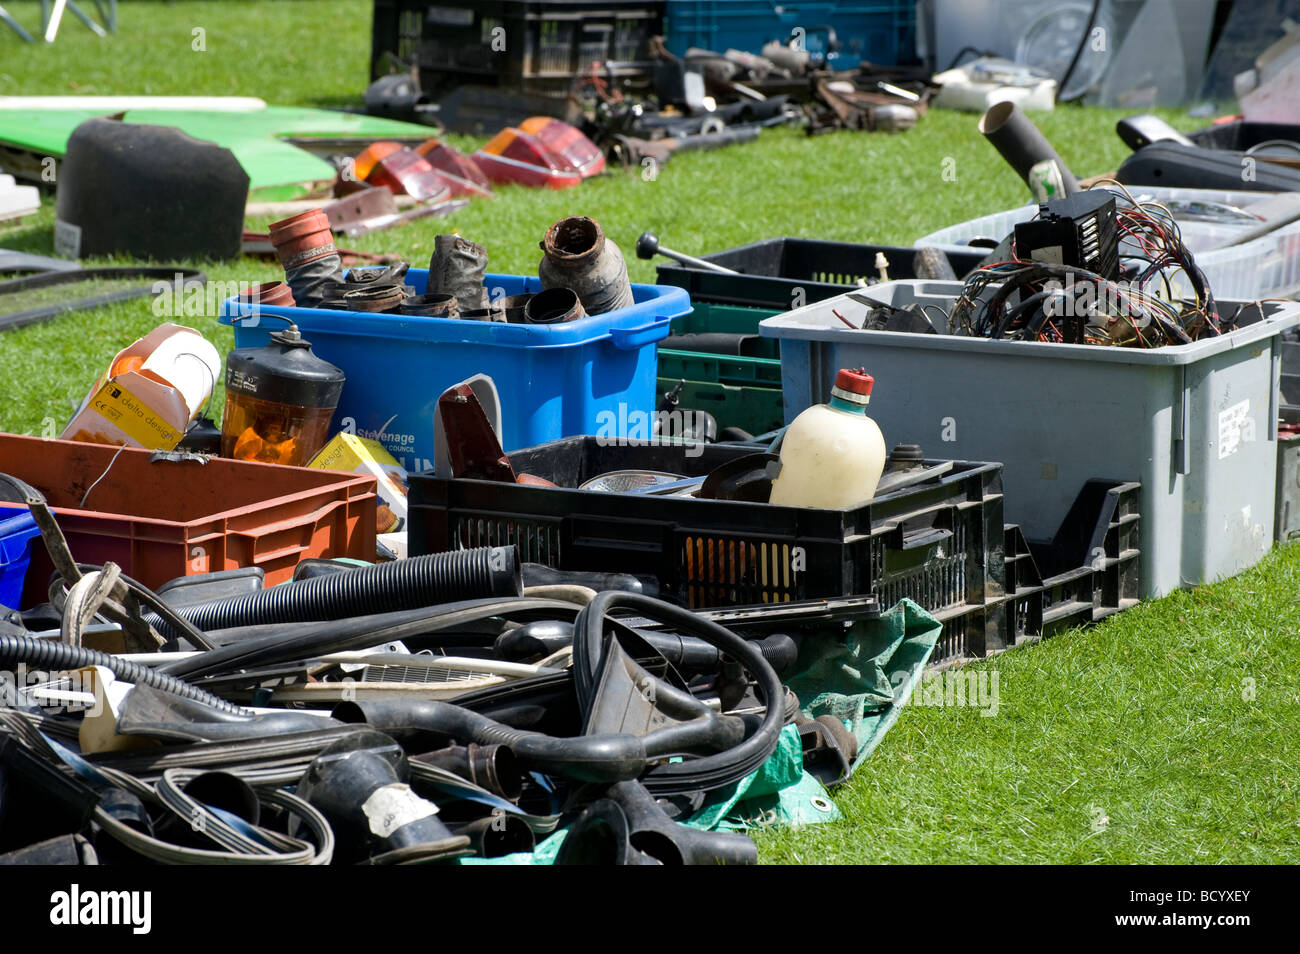 Car parts and spares on an auto jumble stall at an enthusiasts meeting - Stock Image